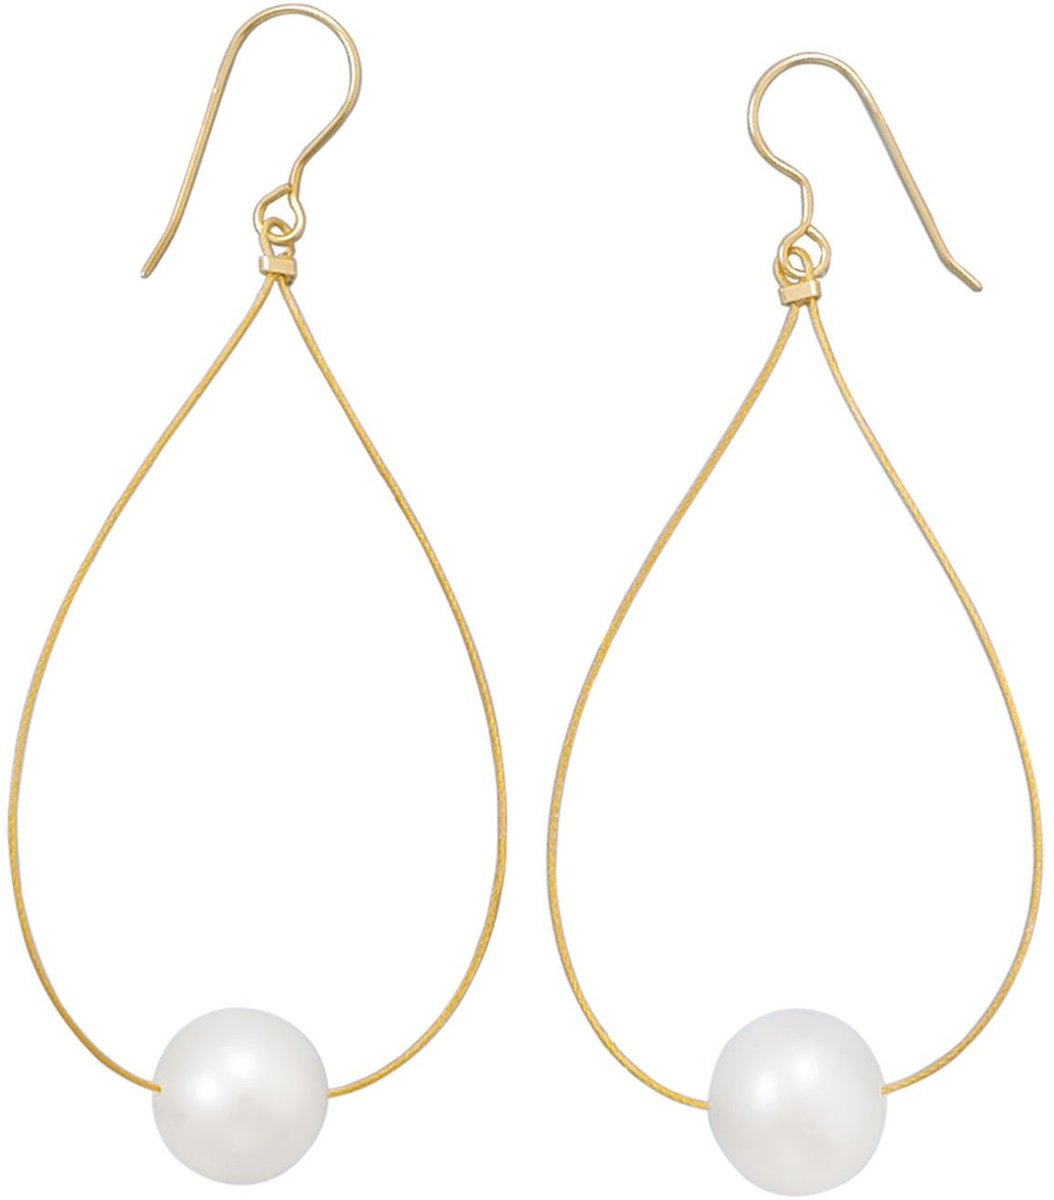 24 Karat Gold Plated Cultured Freshwater Pearl Earrings 925 Sterling Silver